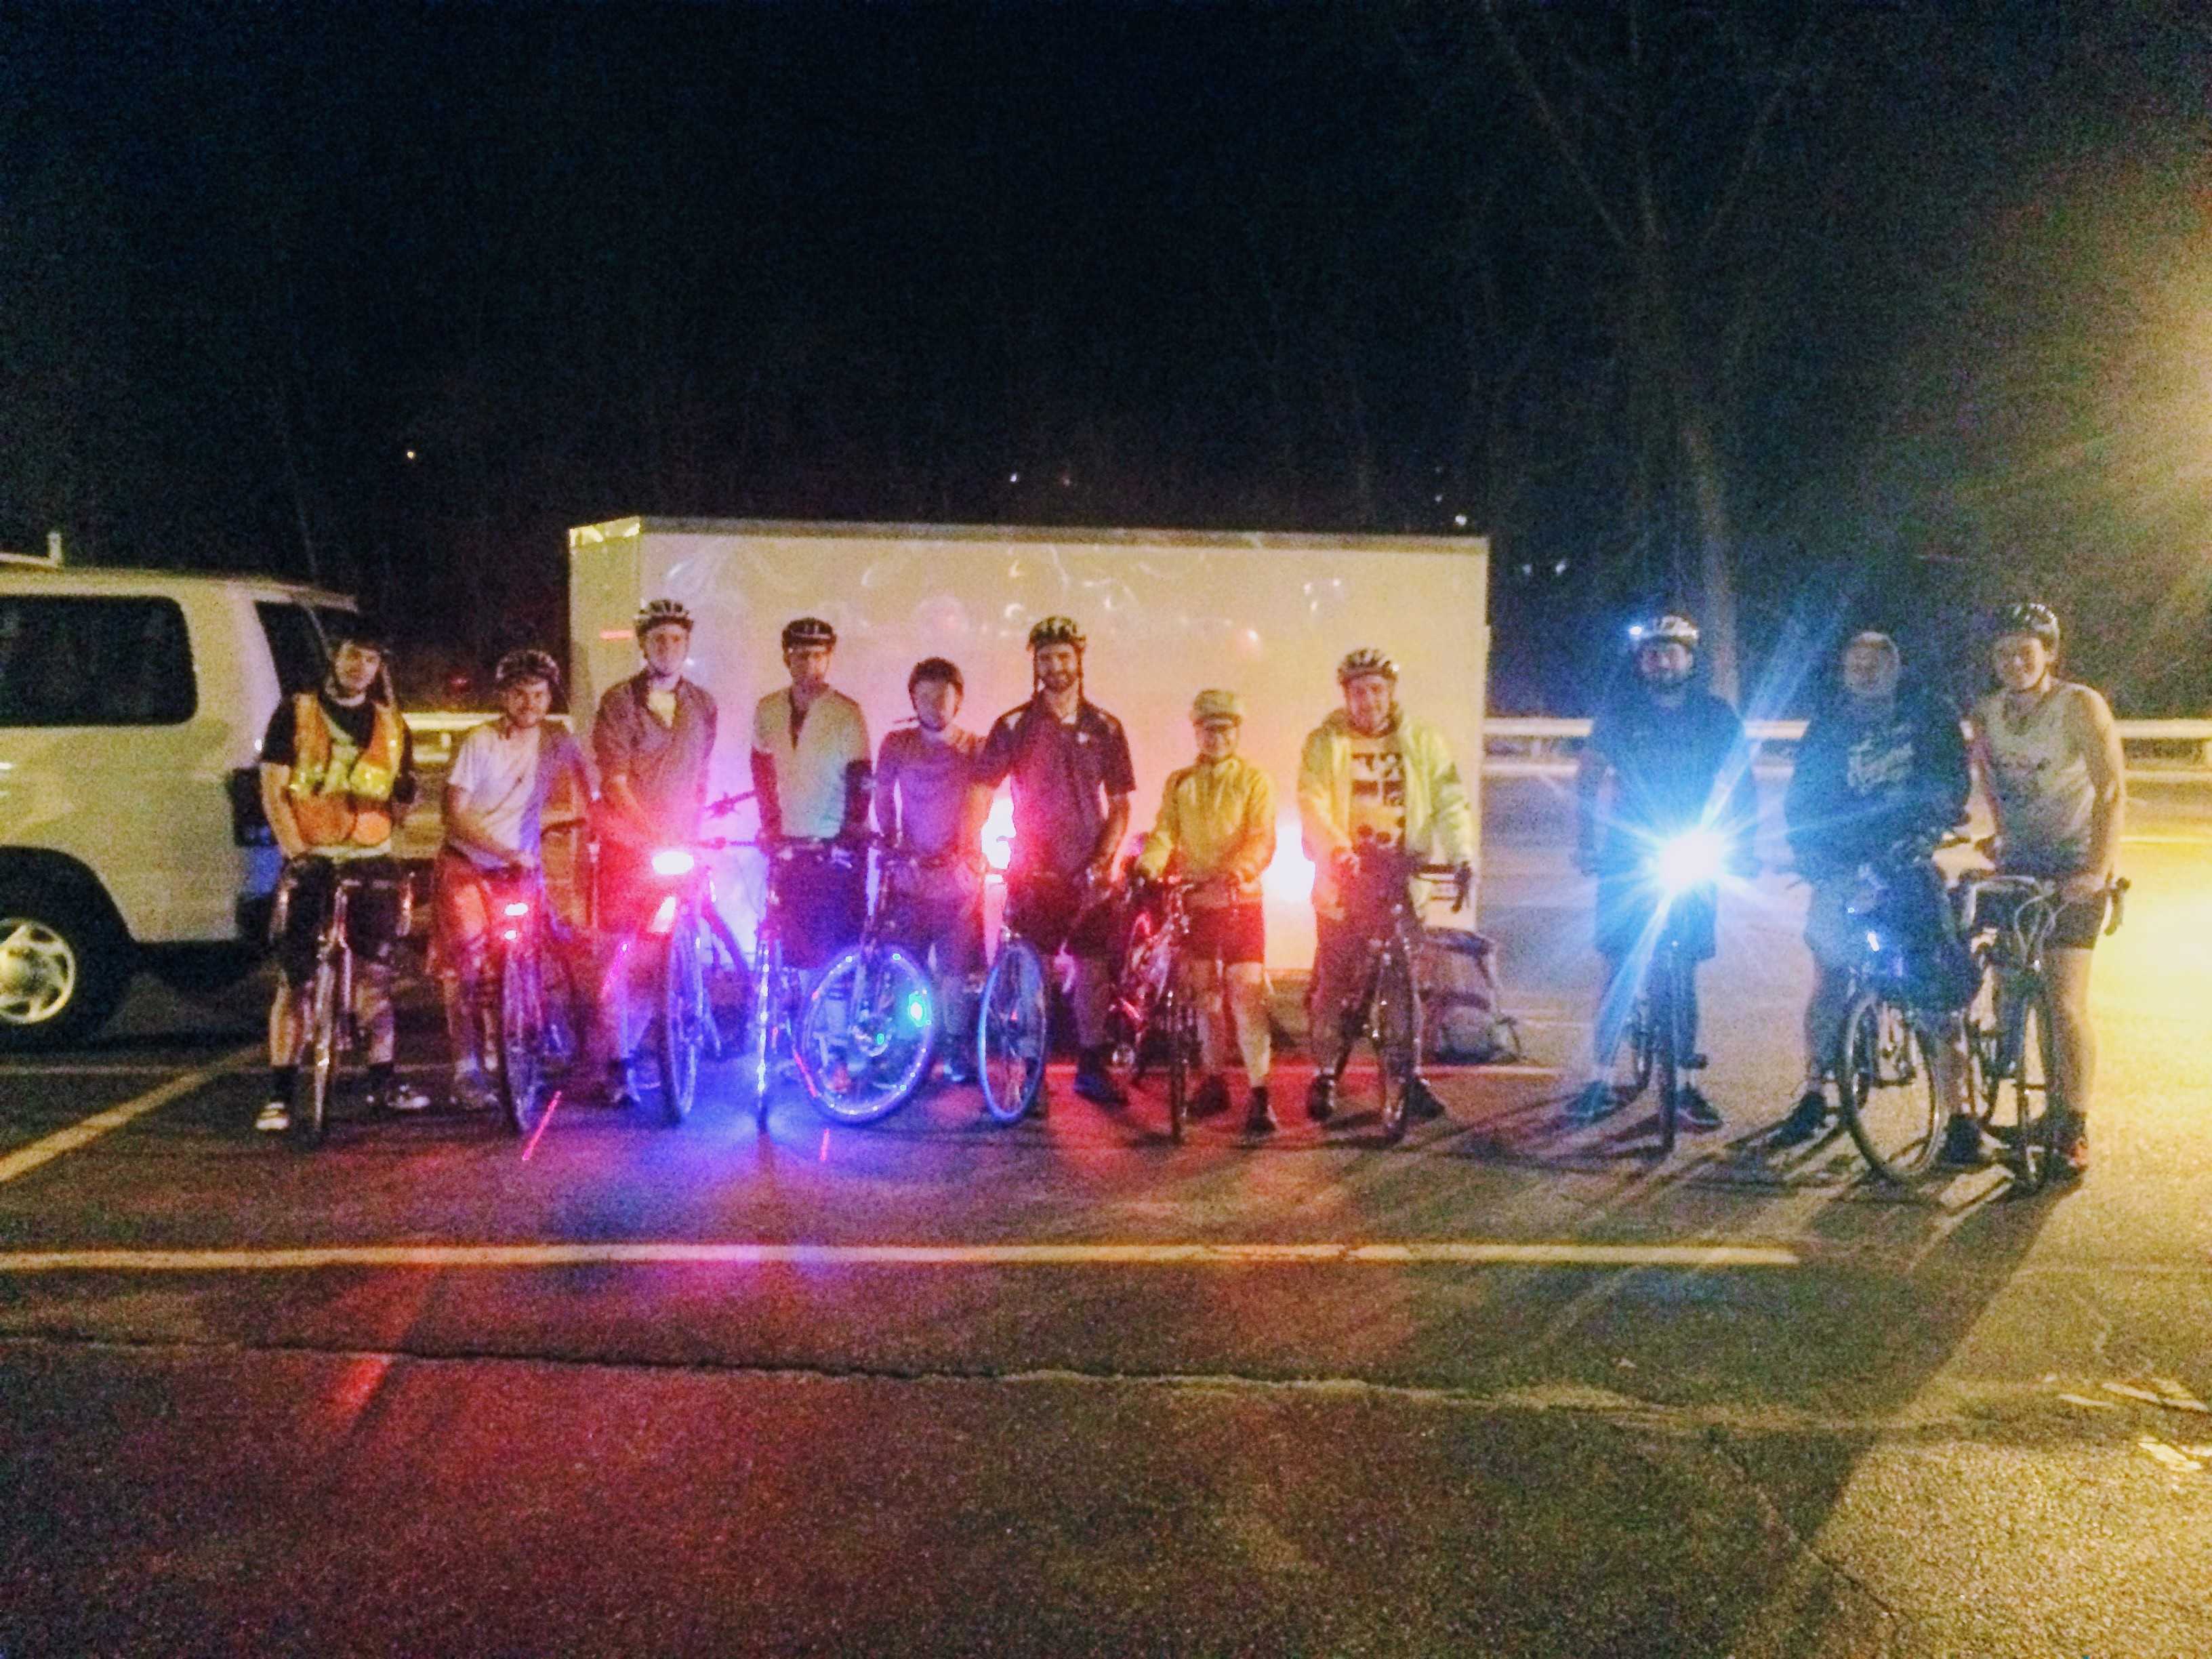 Bicyclists posing with reflective equipment and fun lights